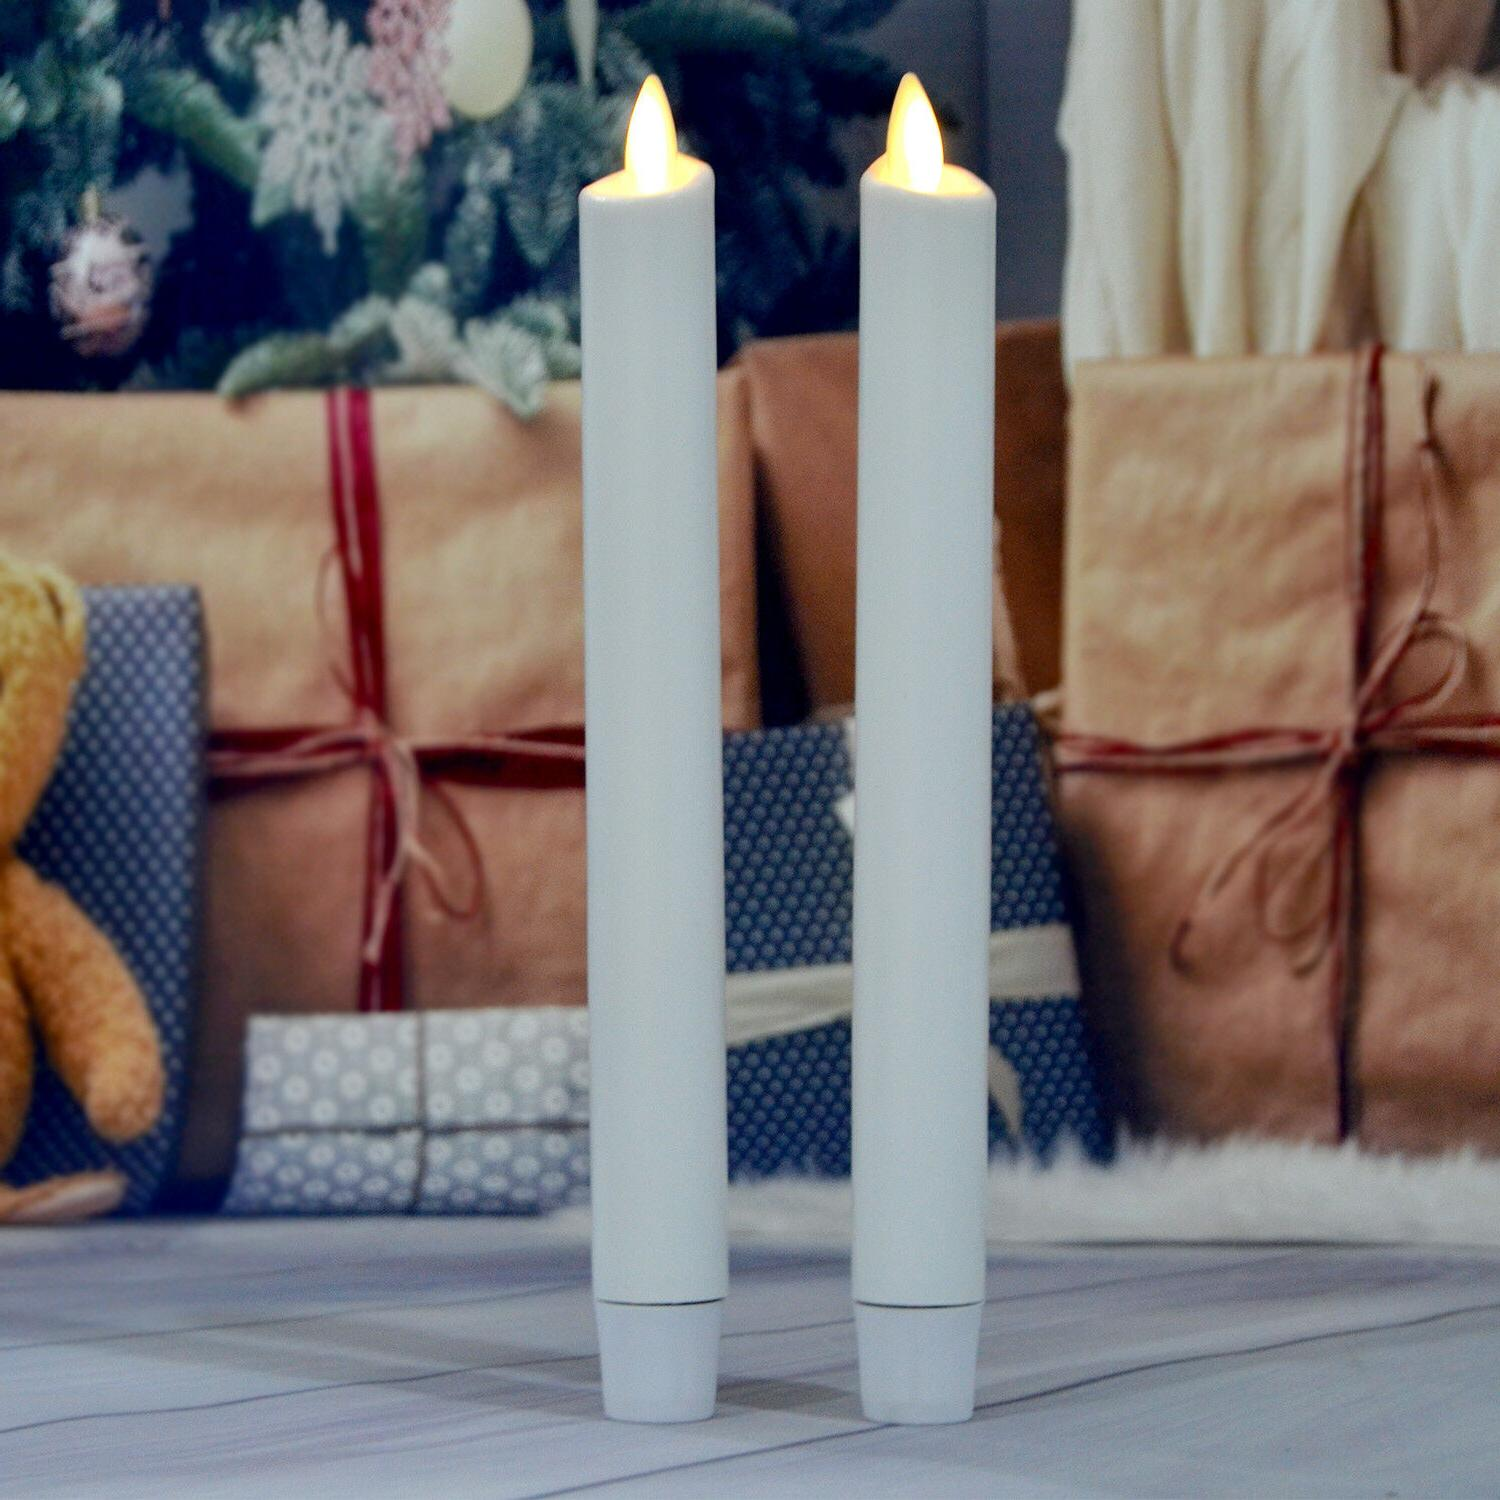 moving flicker flameless led taper candles